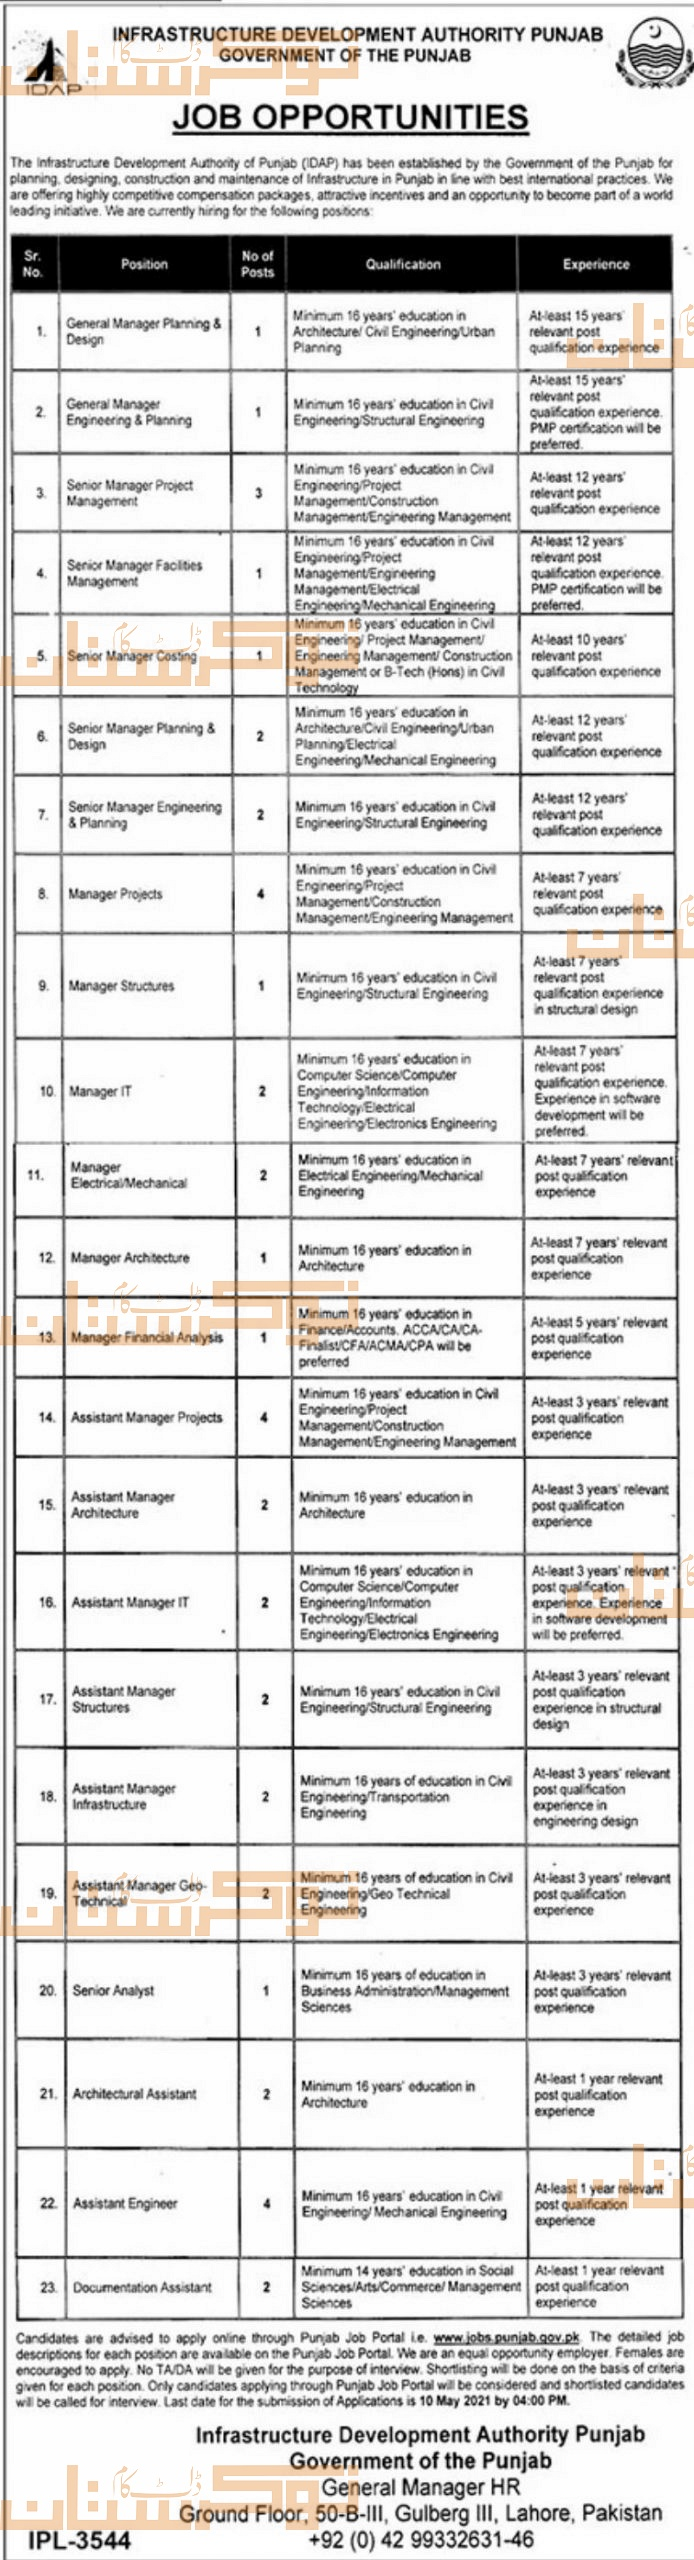 government,infrastructure development authority punjab idap,general manager, senior manager, manager projects, manager structures, manager it and many more,latest jobs,last date,requirements,application form,how to apply, jobs 2021,